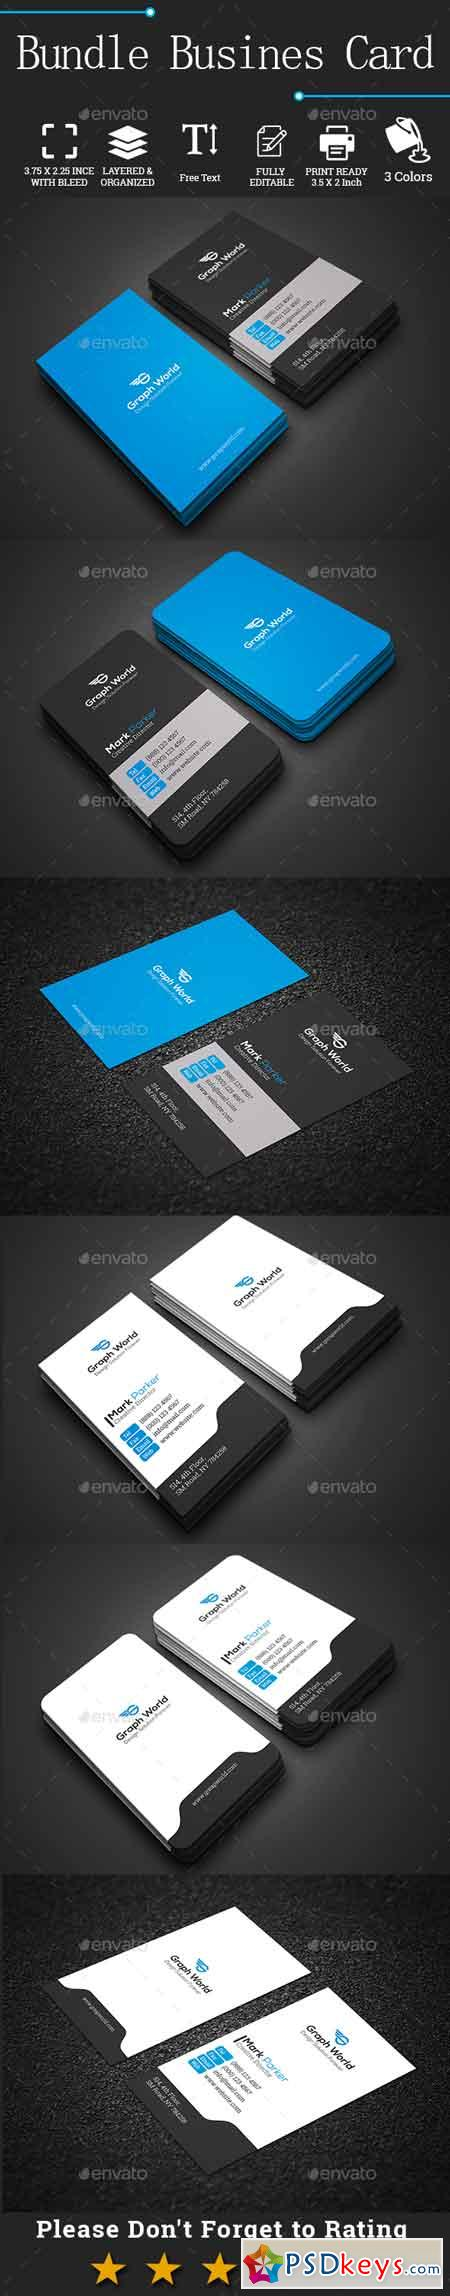 Bundle Business Cards 22135515